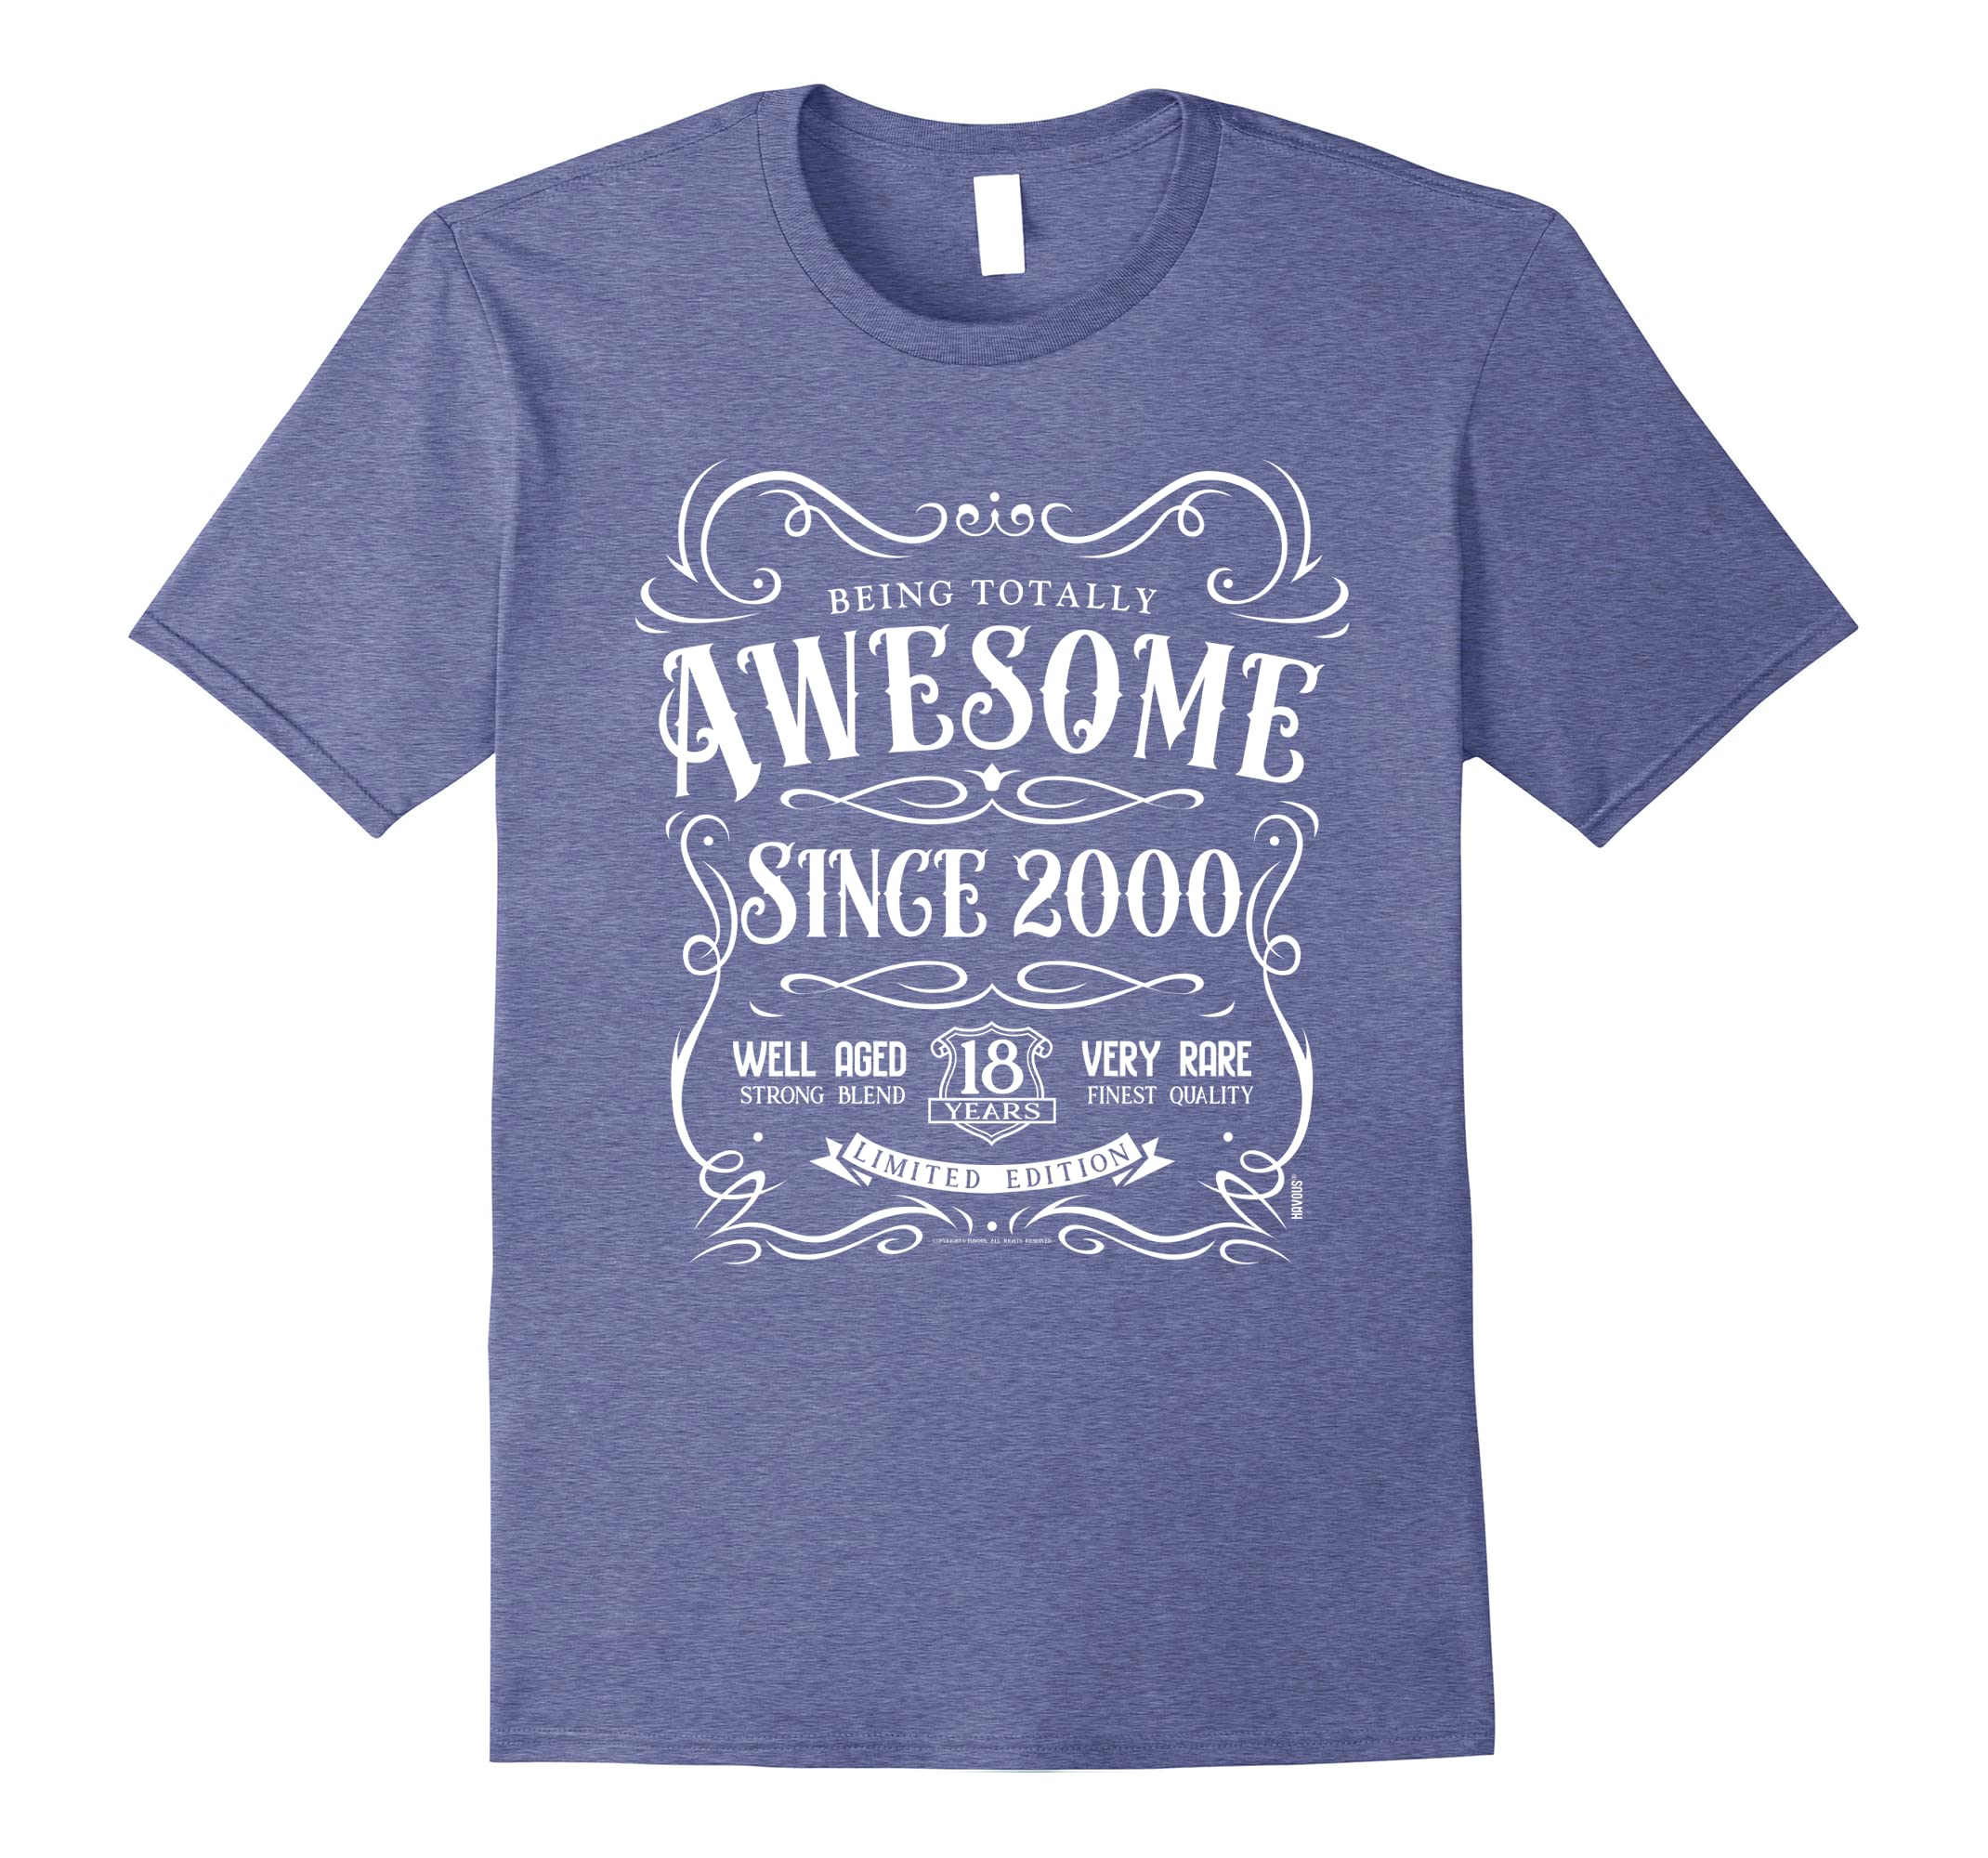 18th Birthday Gift T-Shirt Awesome Since 2000-Newstyleth